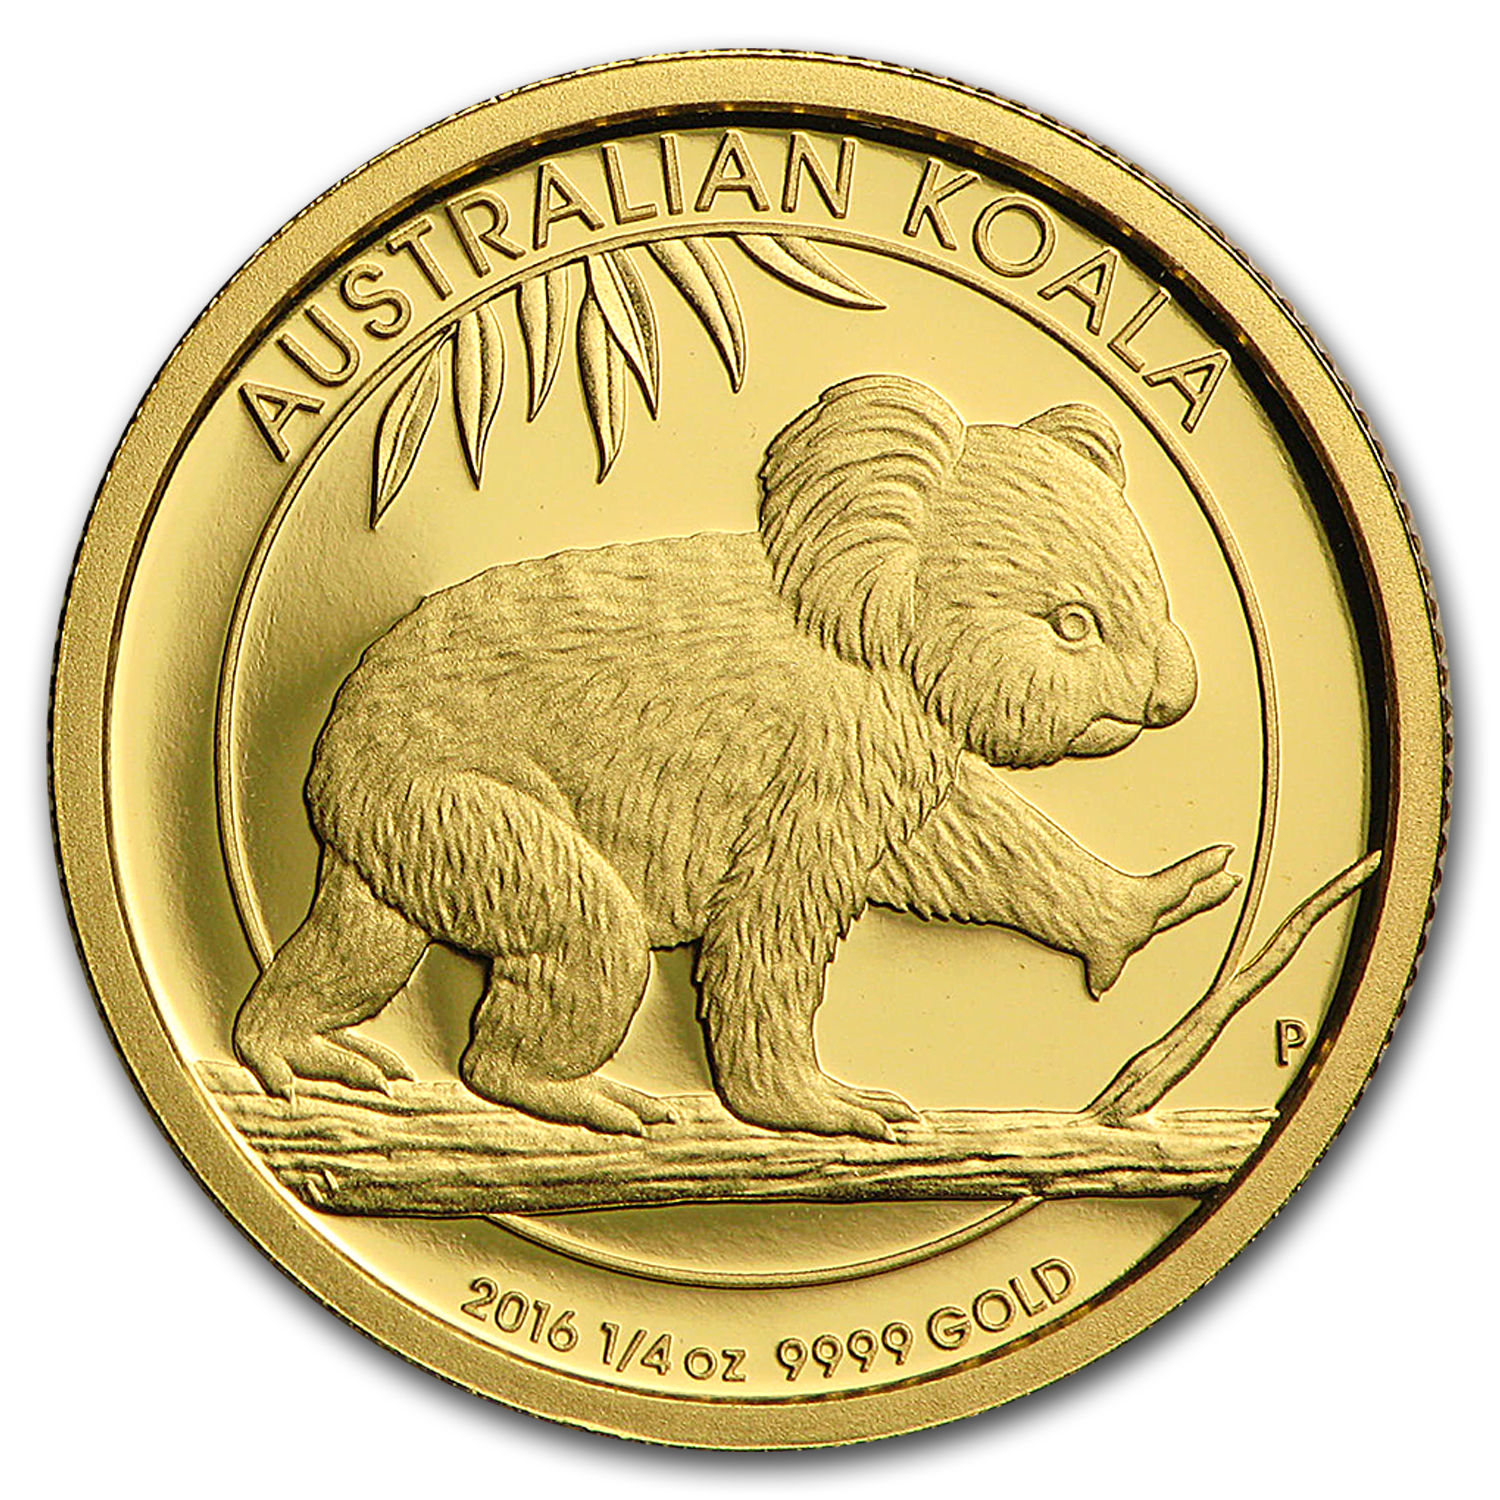 2016 Australia 1/4 oz Gold Koala Proof